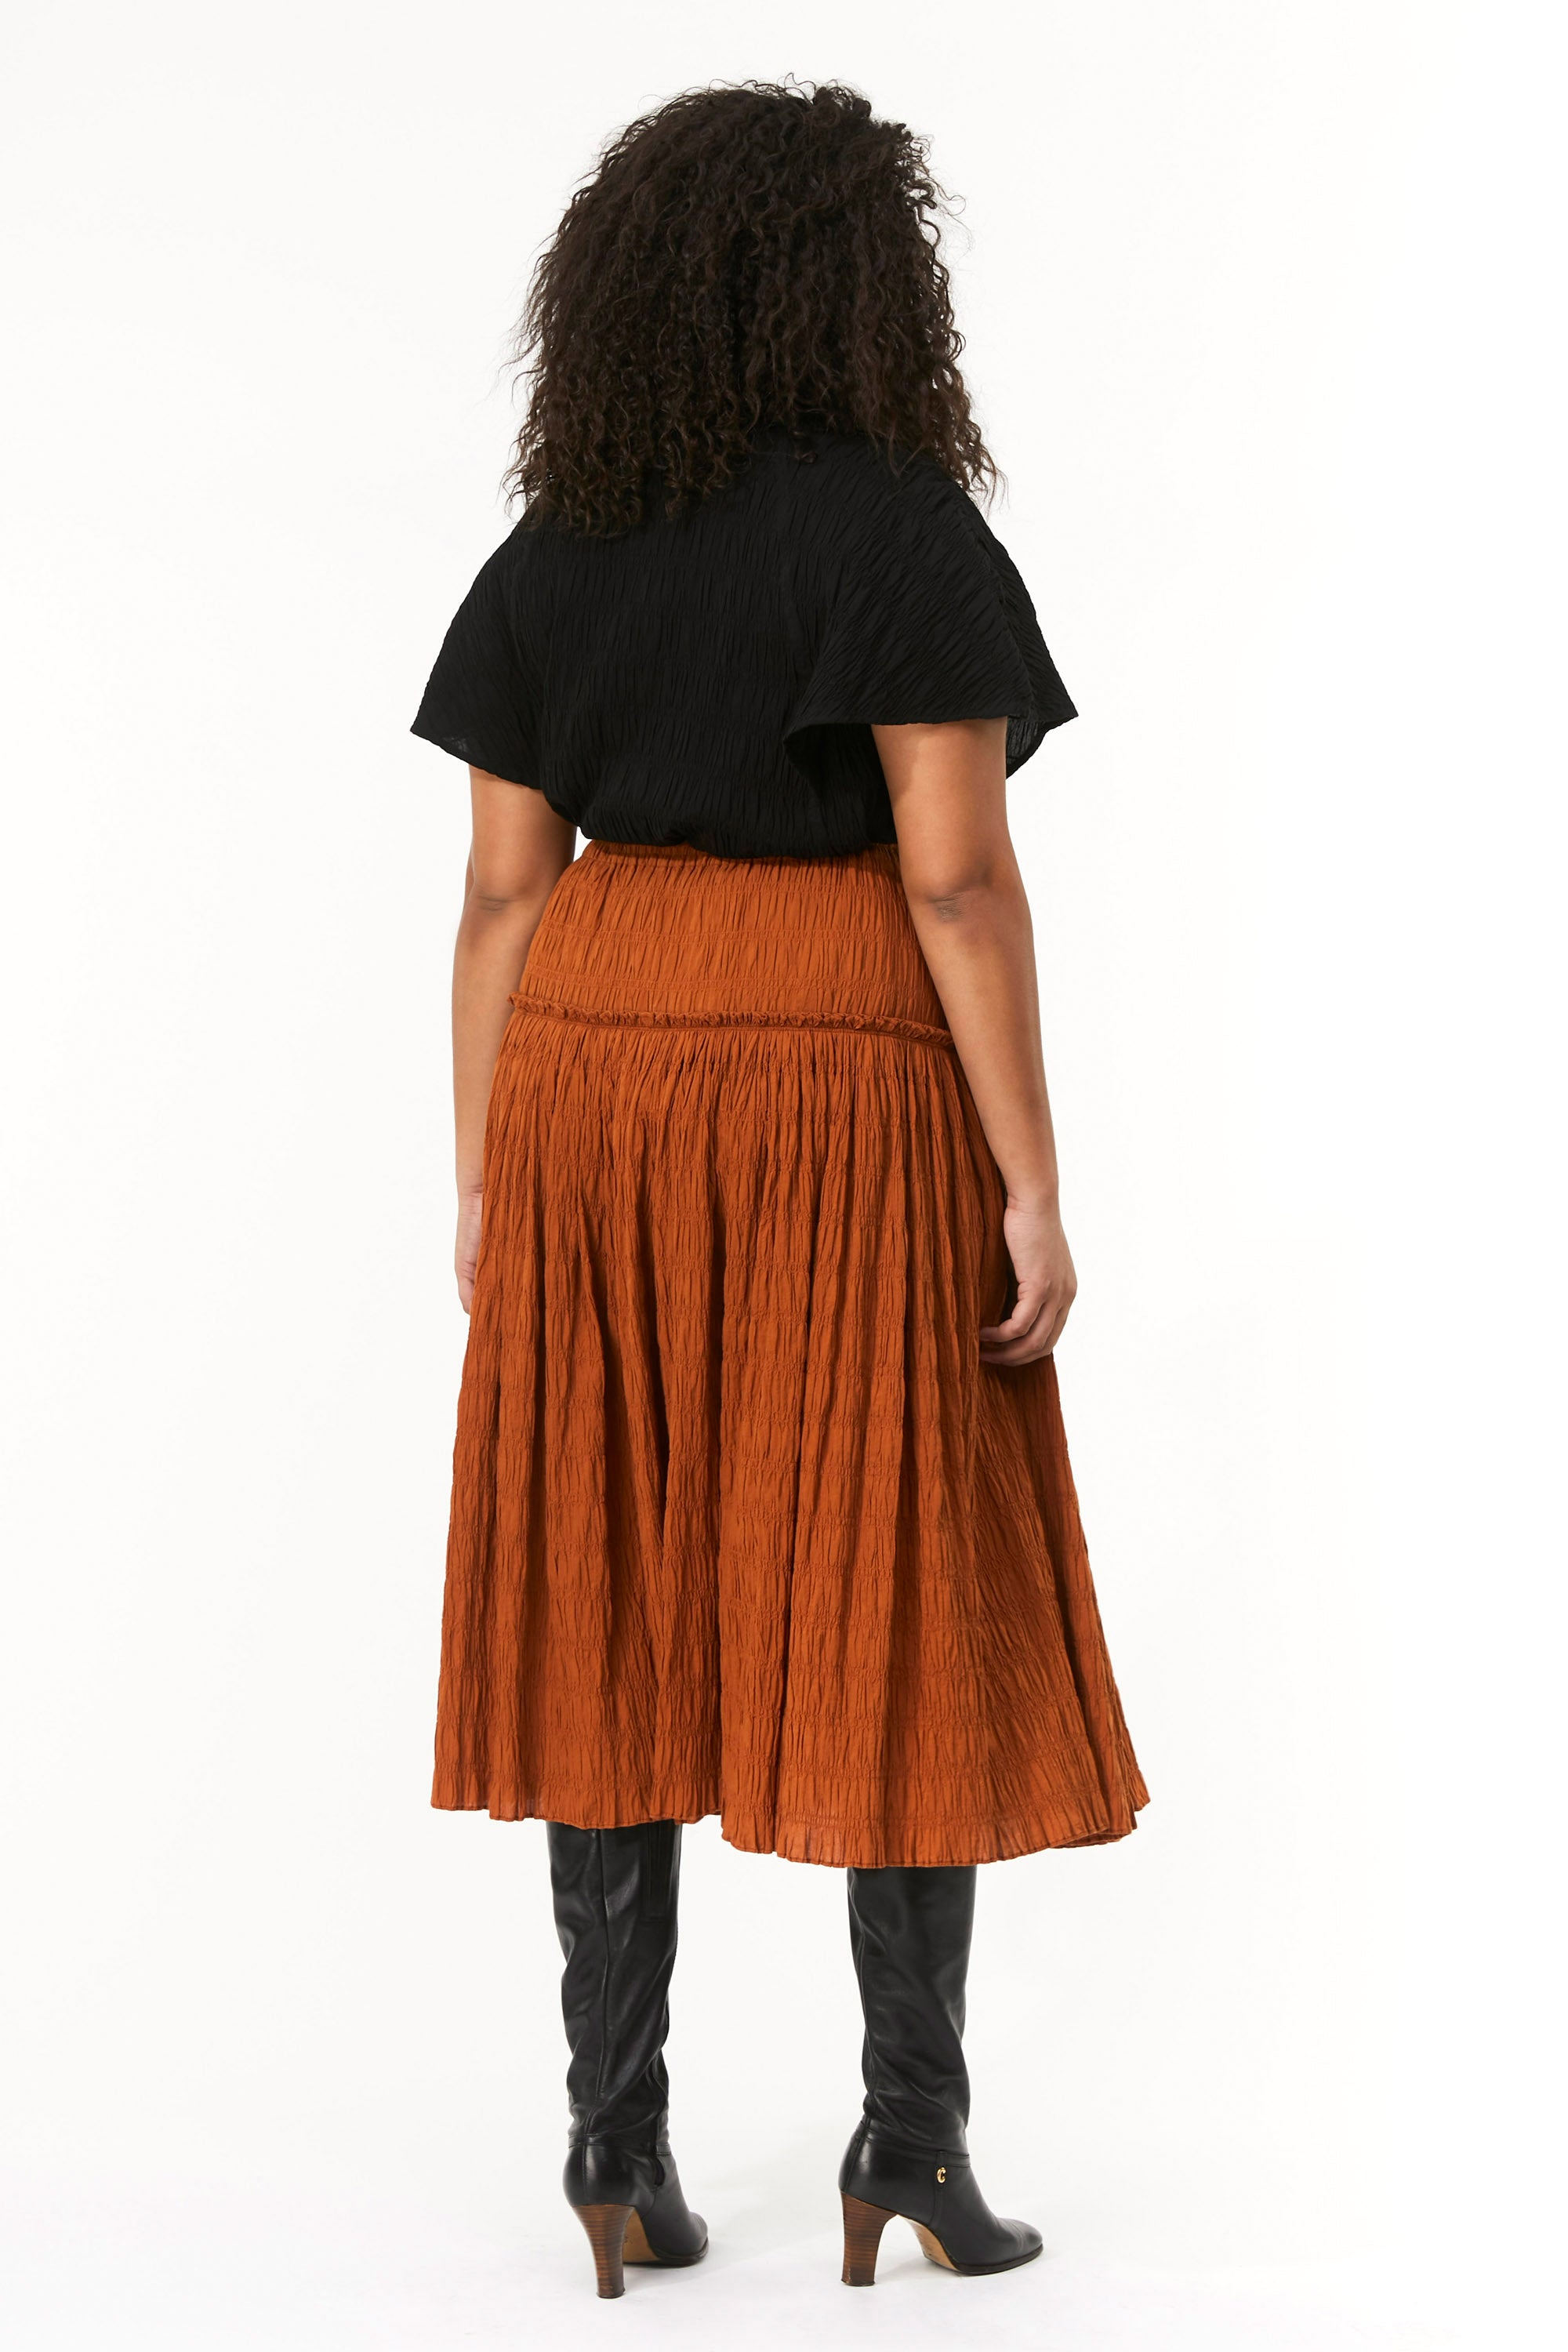 Extended Mara Hoffman Brown Alejandra Skirt in organic cotton (back)